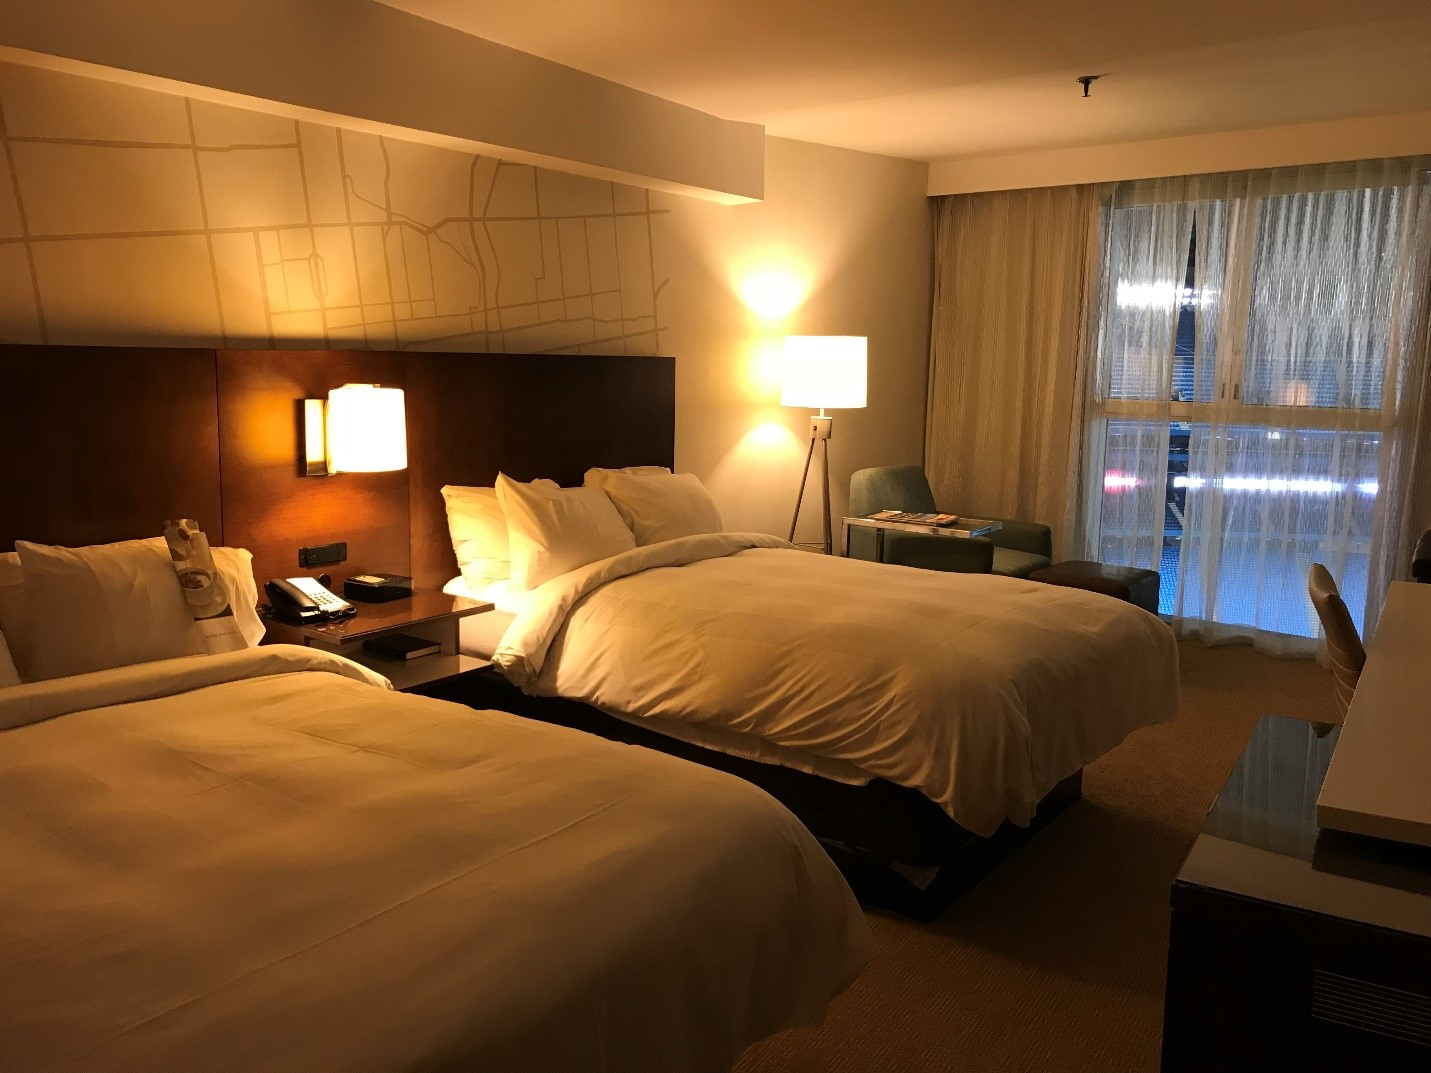 hotel room interior at the Rogers Centre in Toronto